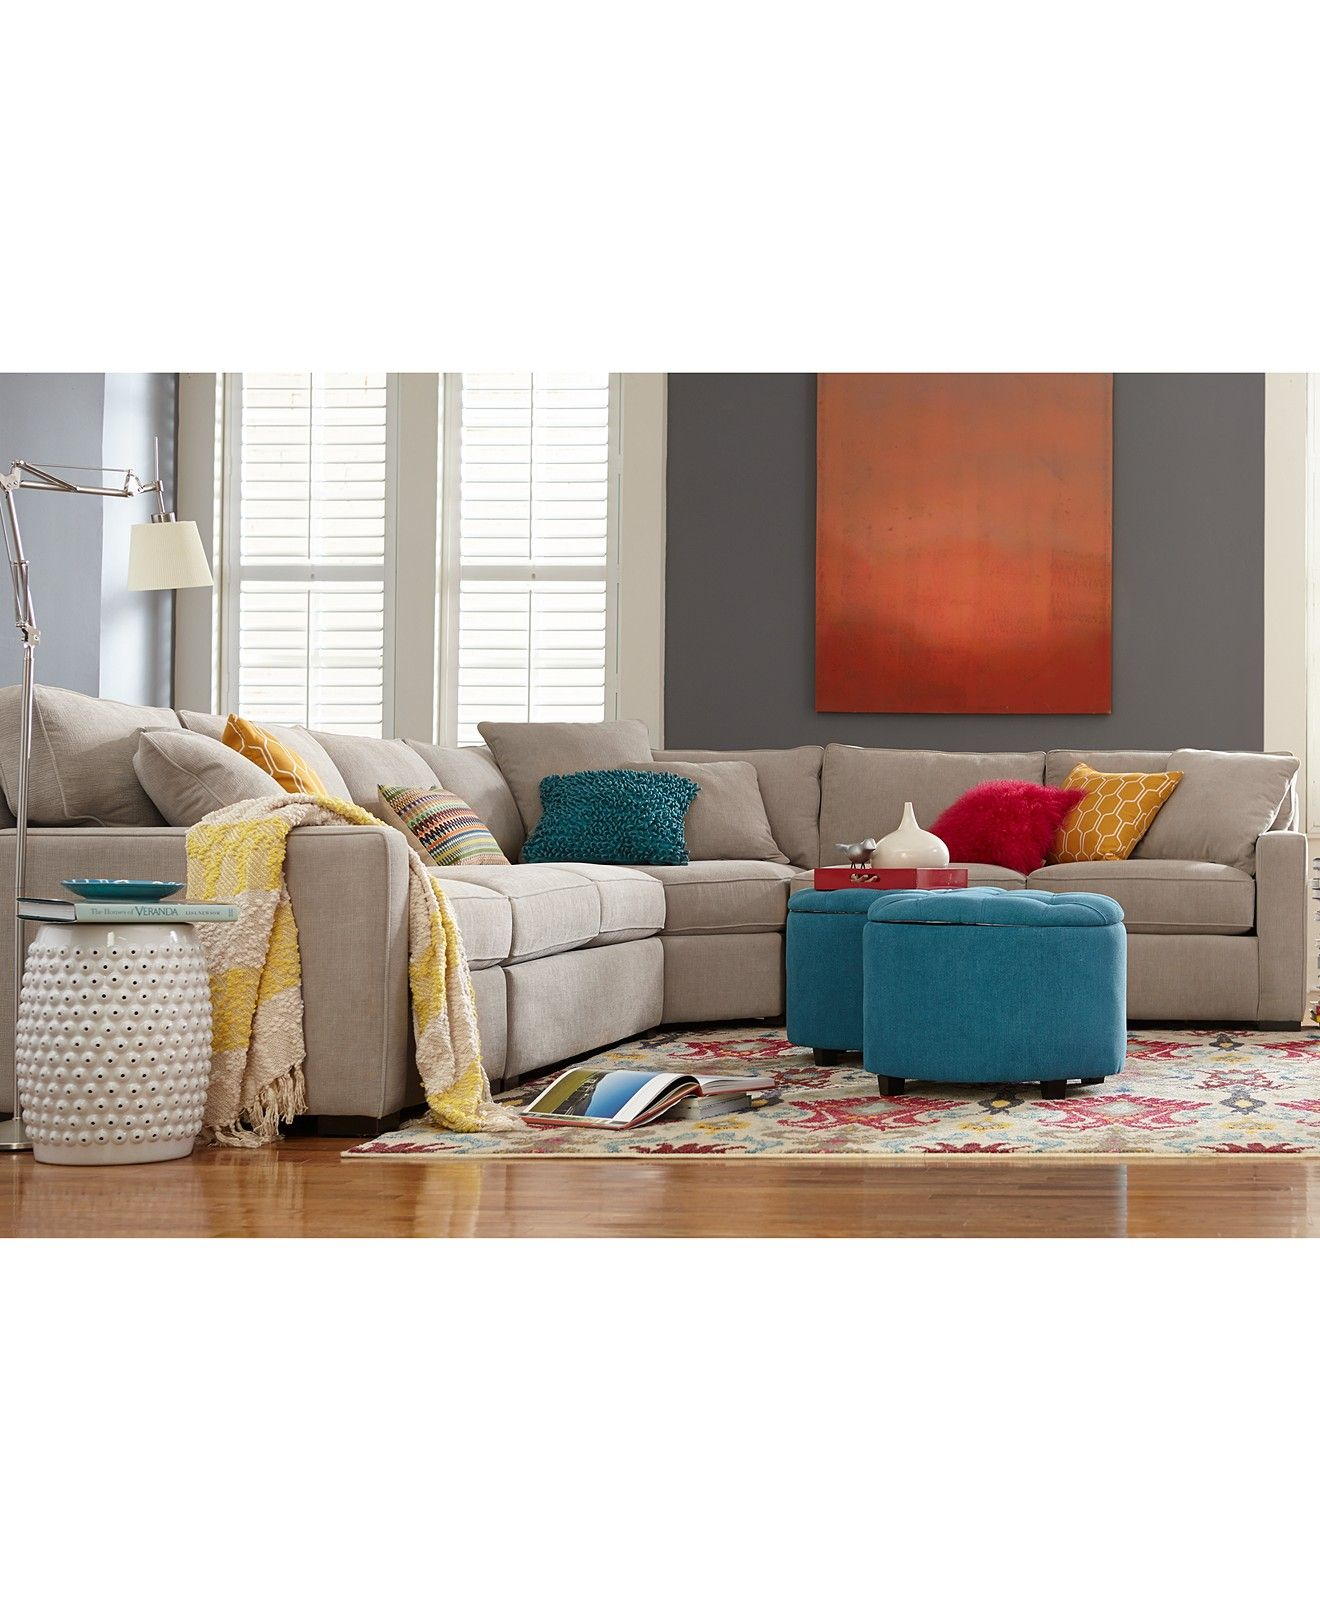 Marvelous Adding The Right Pops Of Color Can Totally Change The Game, Radley Furniture Awesome Design